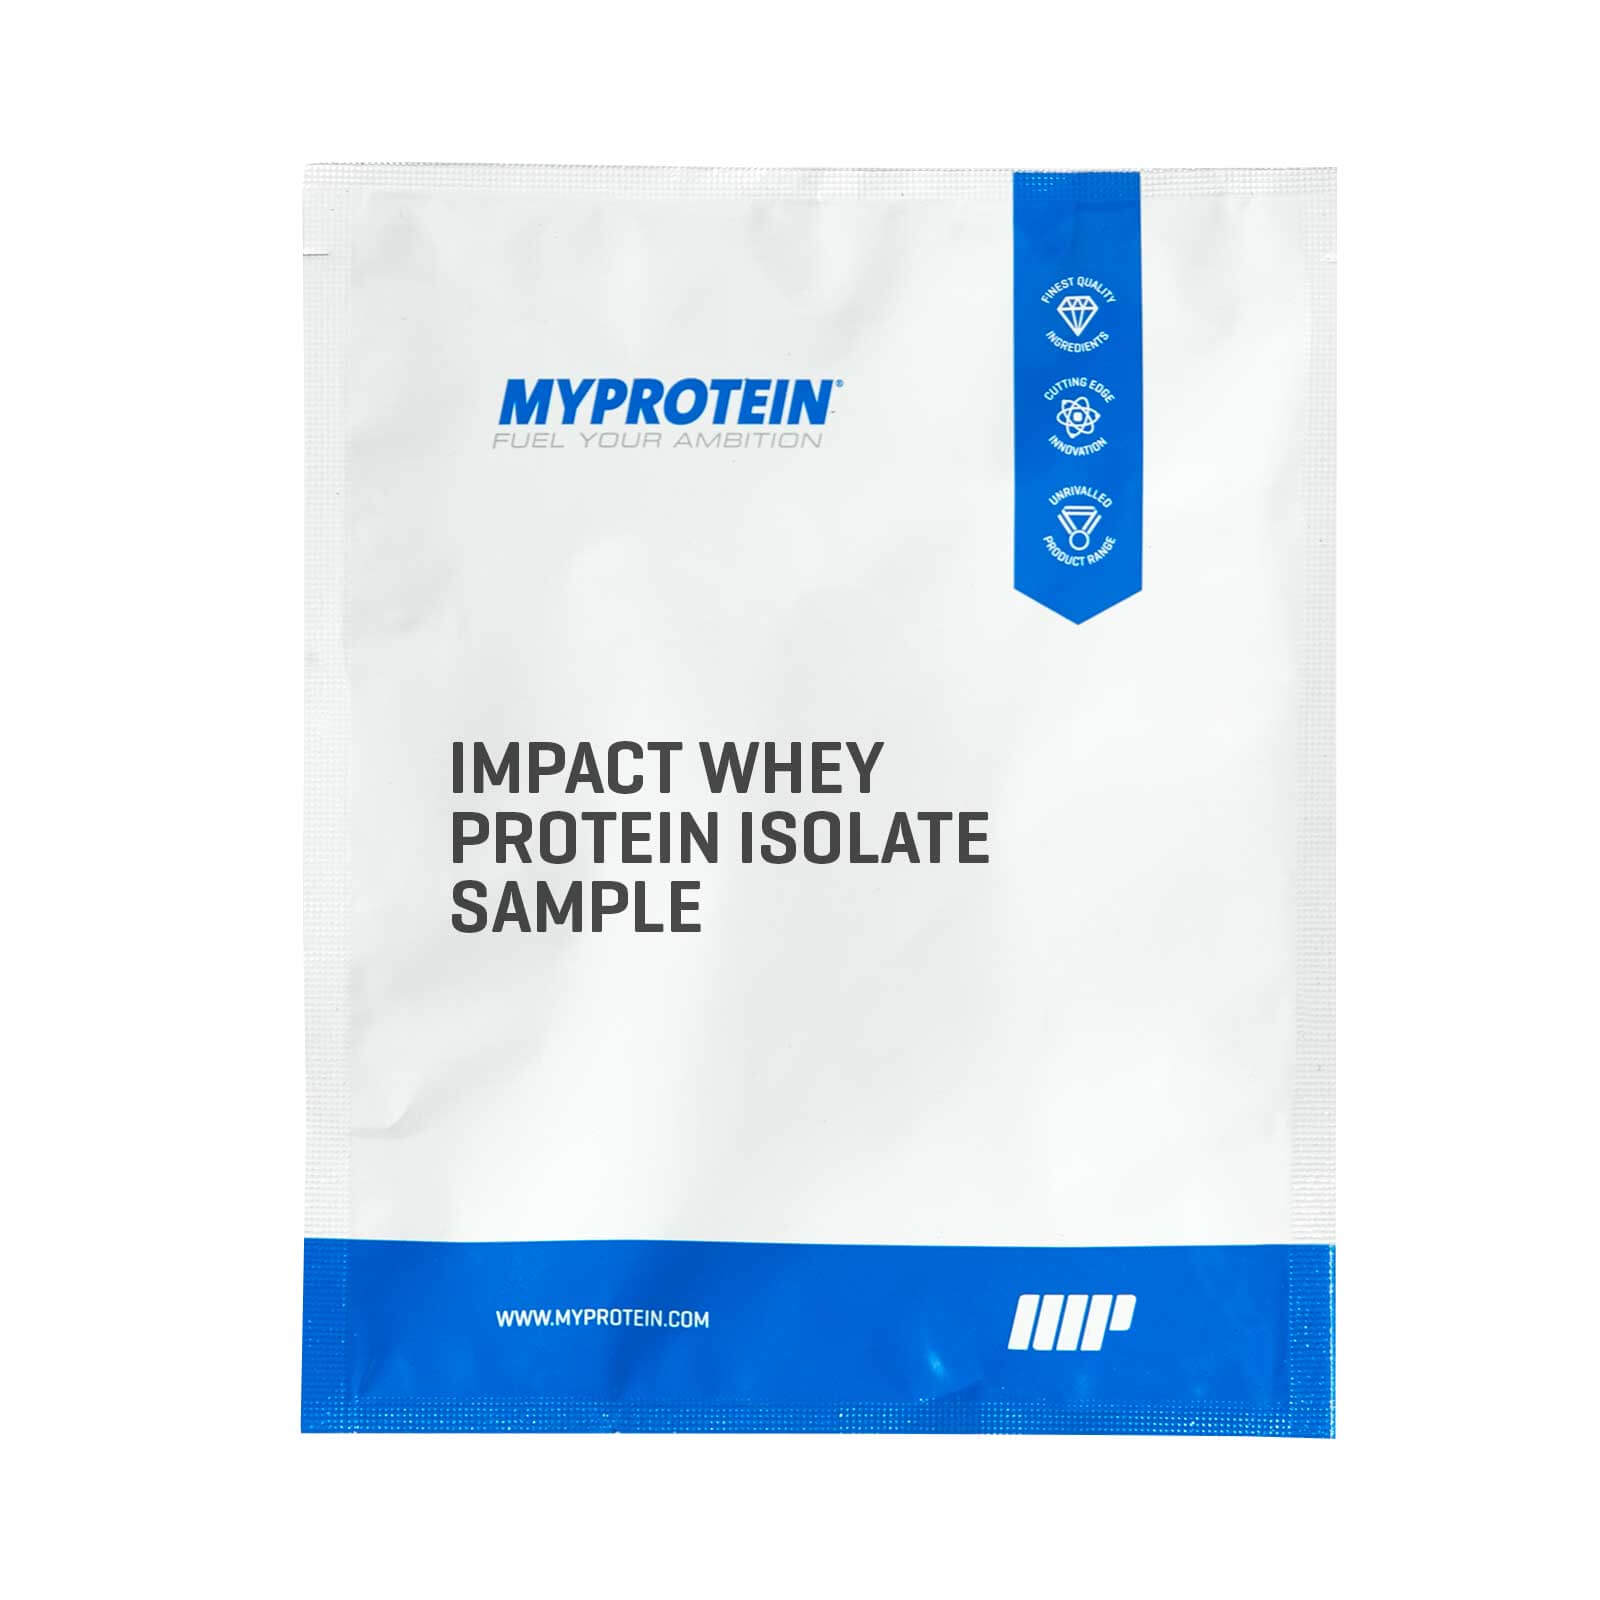 Impact Whey Isolate, Matcha, 25g (Sample)